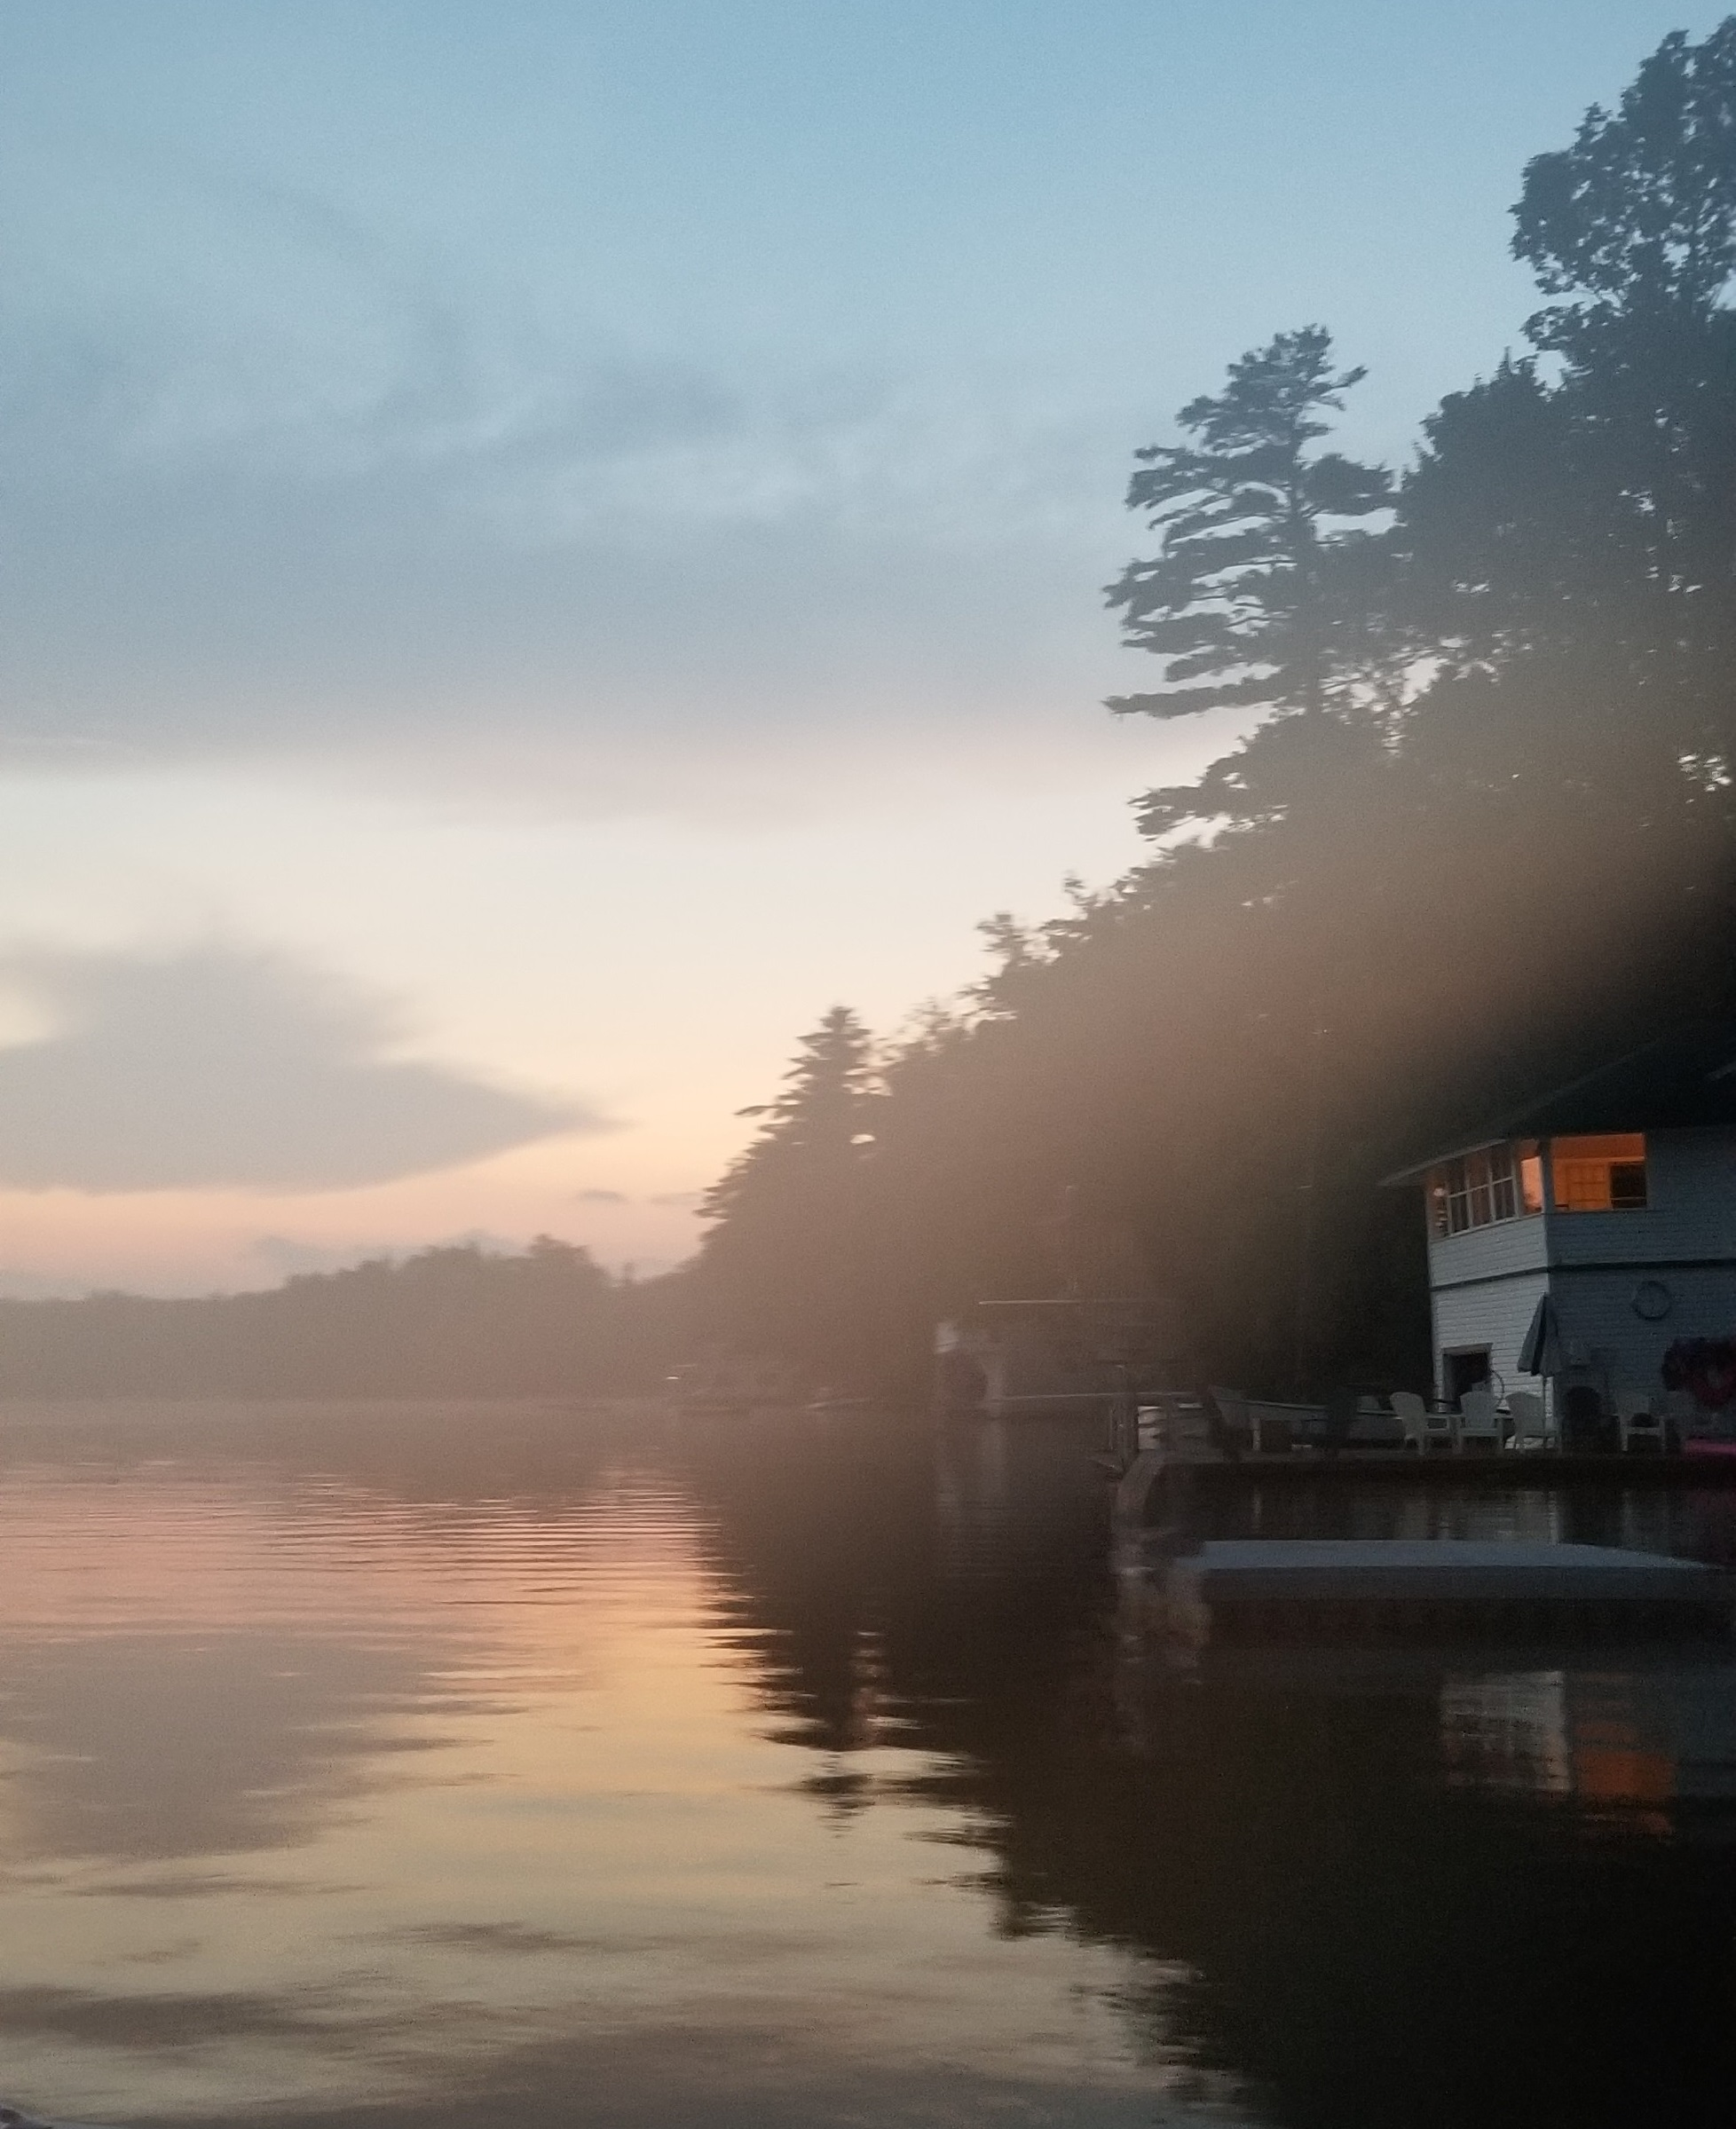 View from the water of a boathouse on a lake at dusk